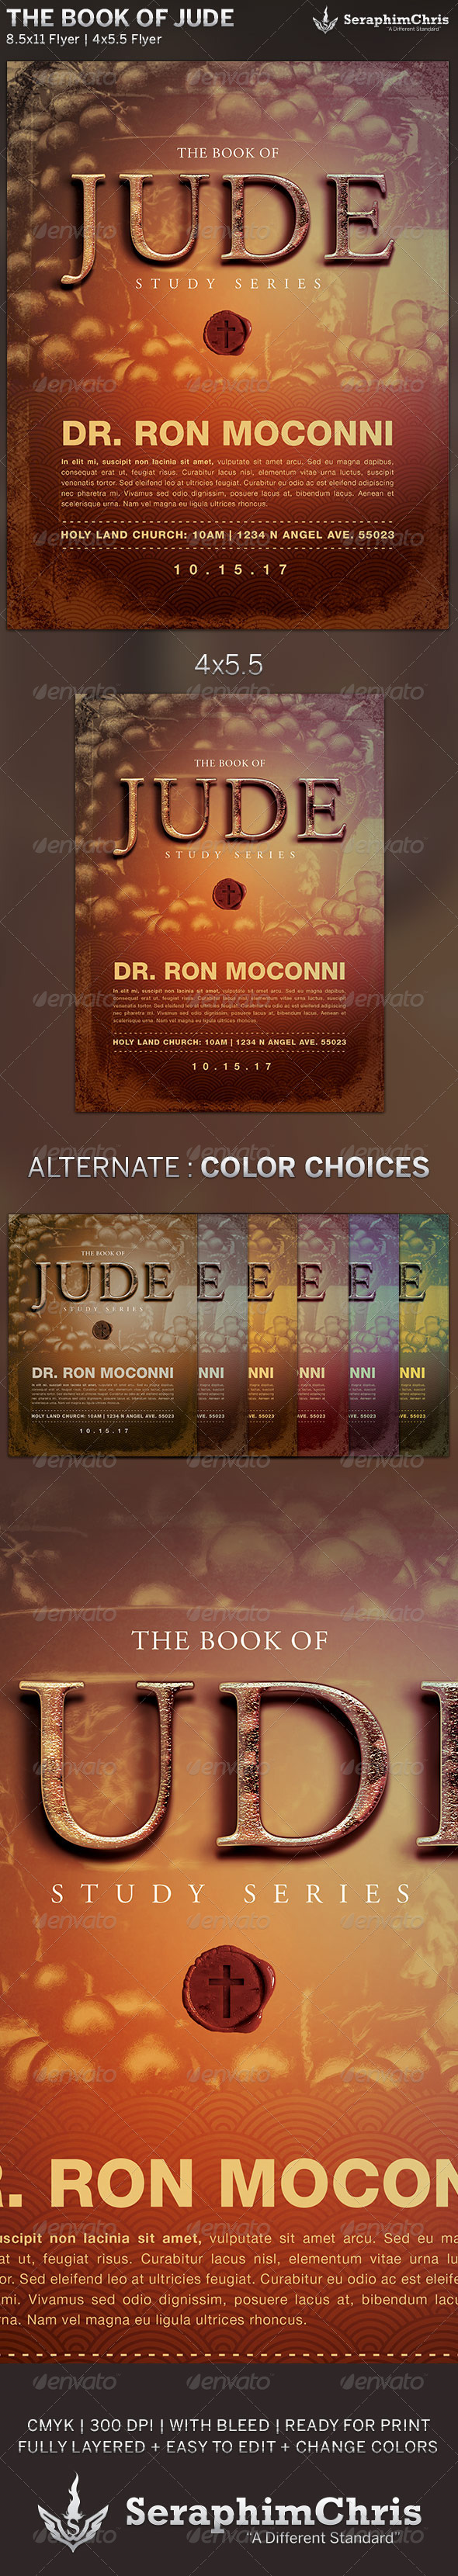 The Book of Jude: Church Flyer Template - Church Flyers